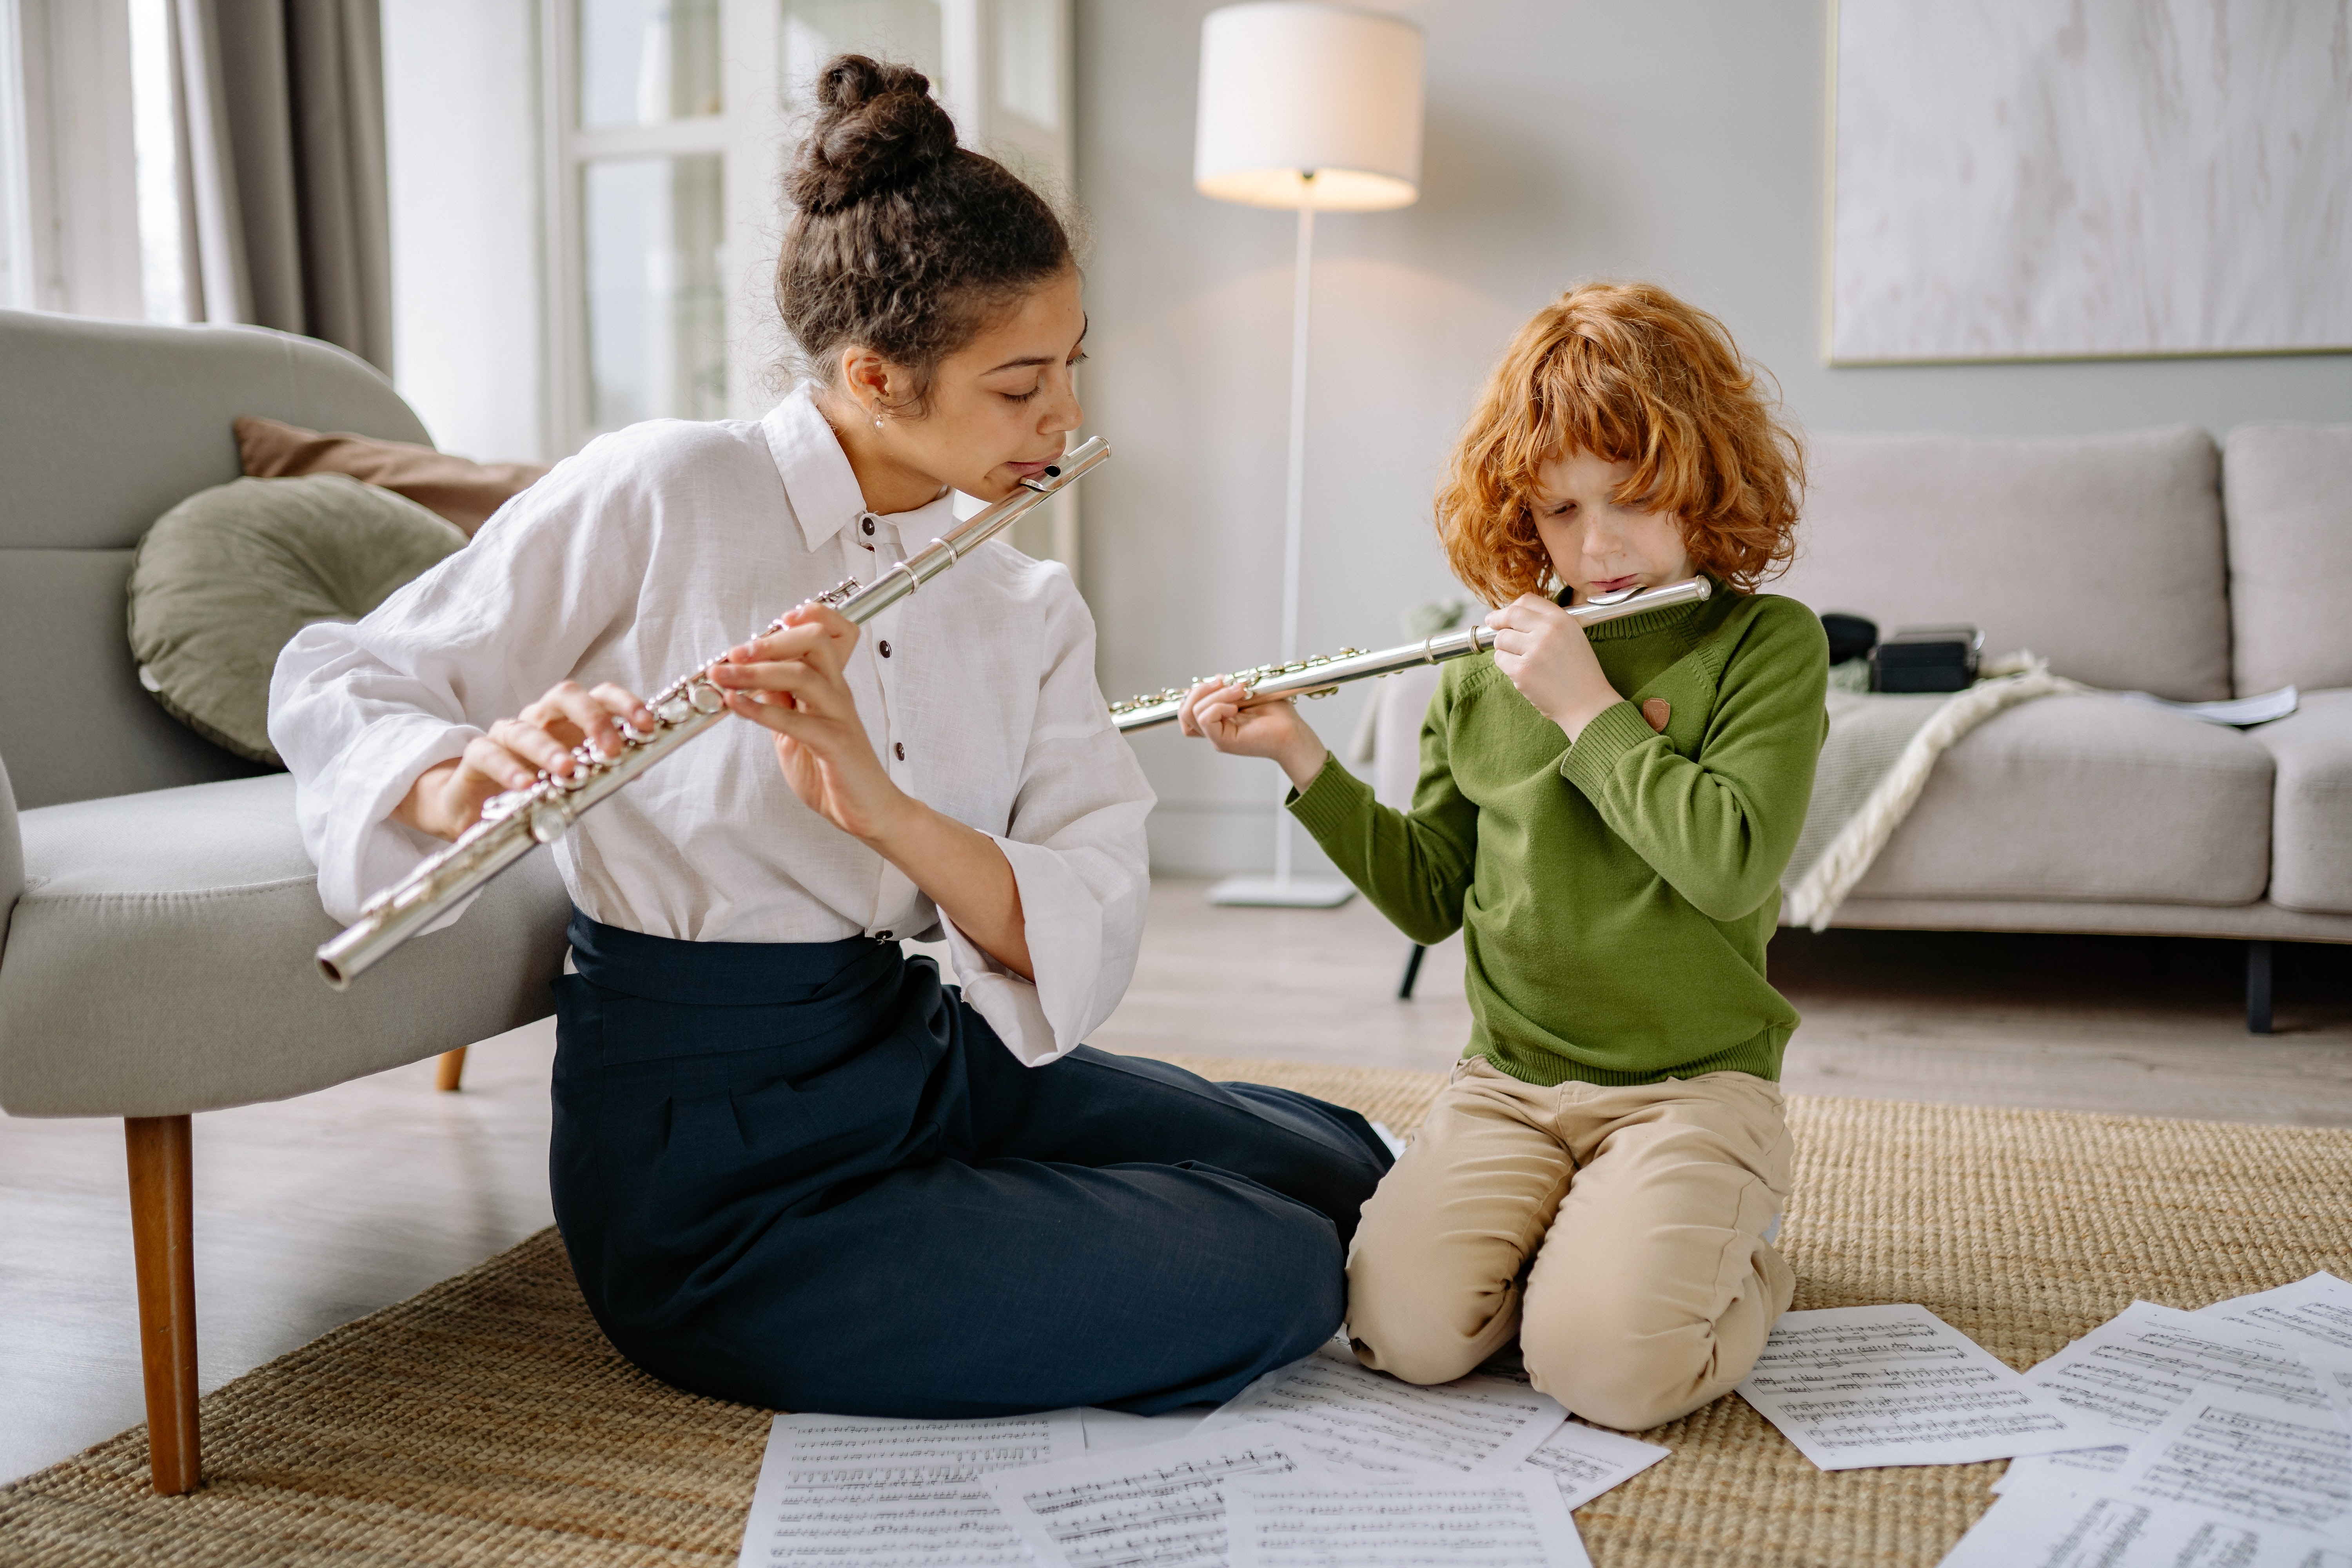 How Childhood Music Education Improves the Adult Brain